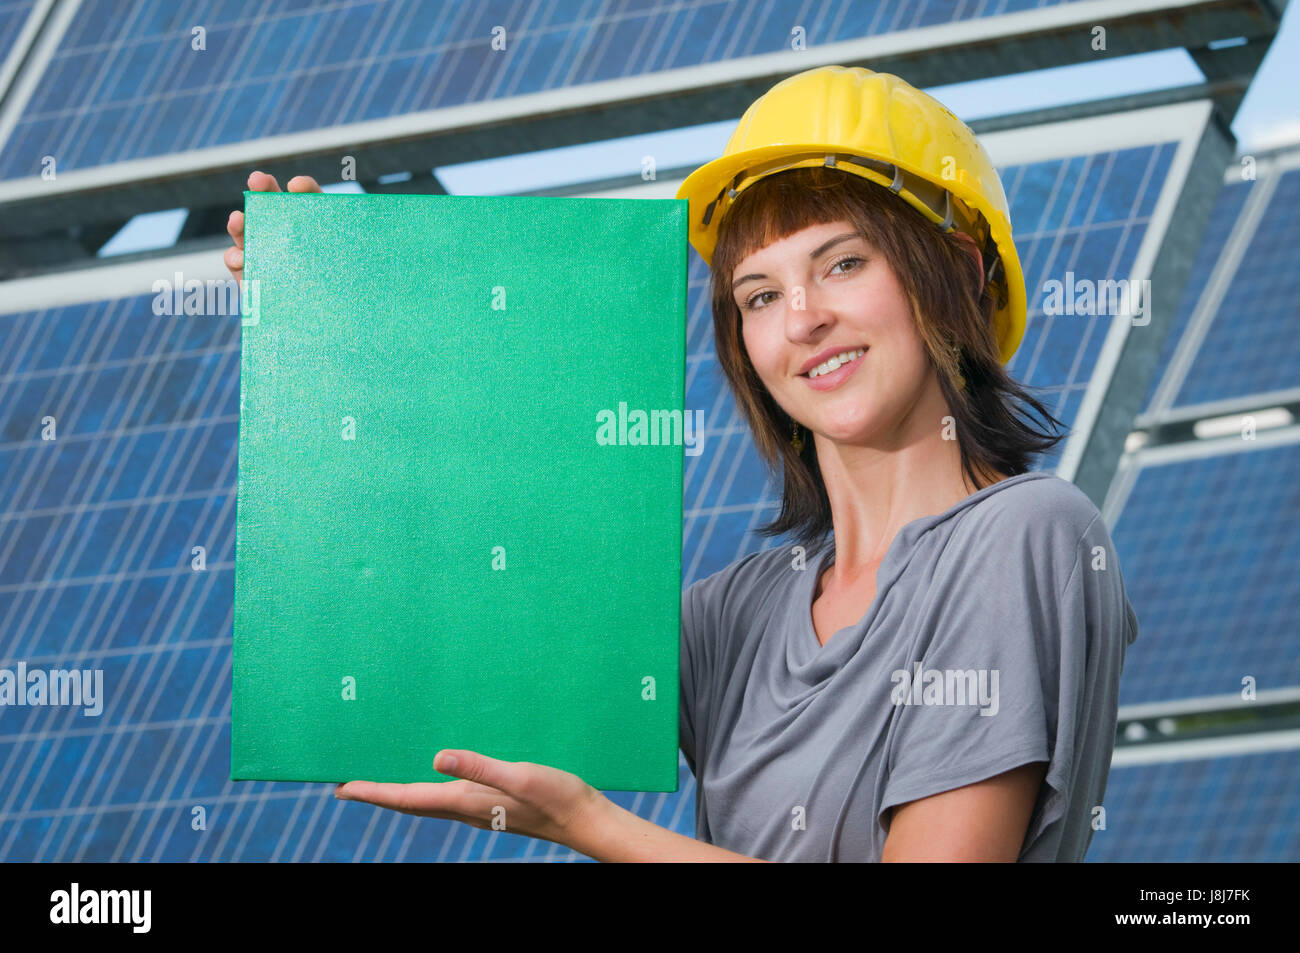 greencard in the hands of young lady - Stock Image